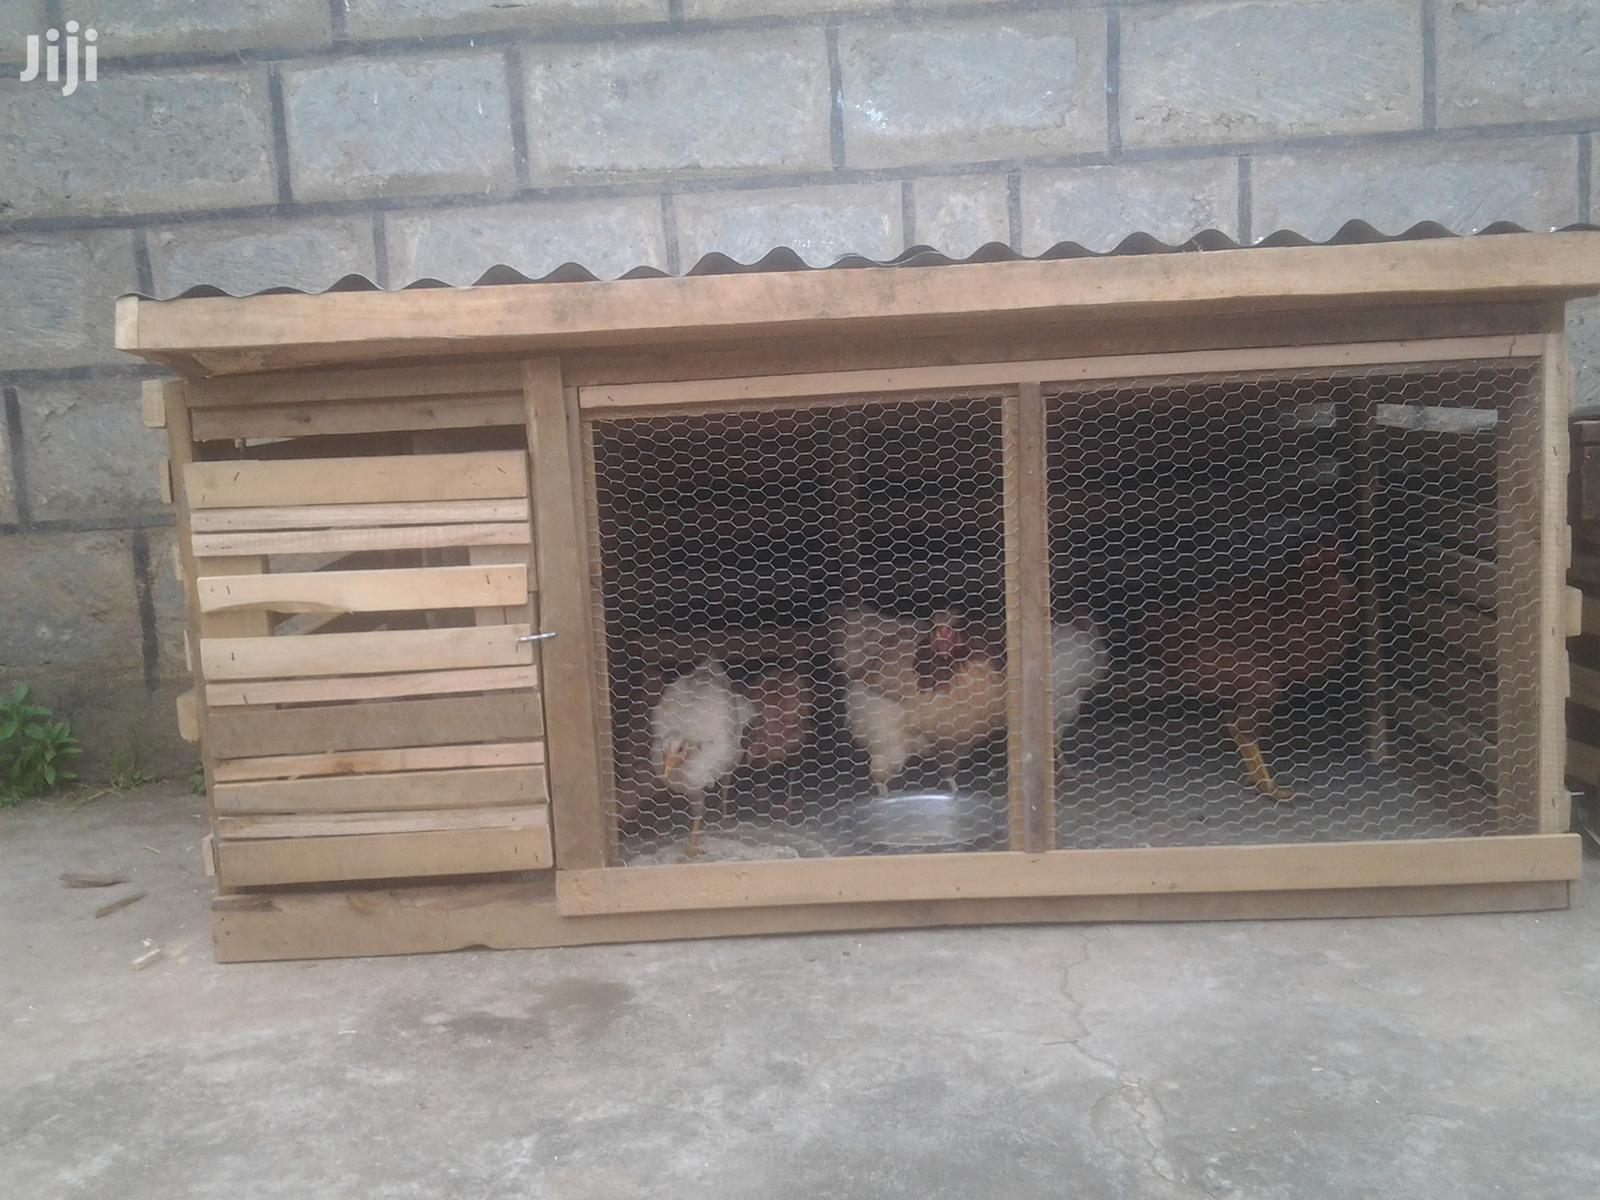 Archive: Modern Chicken Cages For 10 Chicken